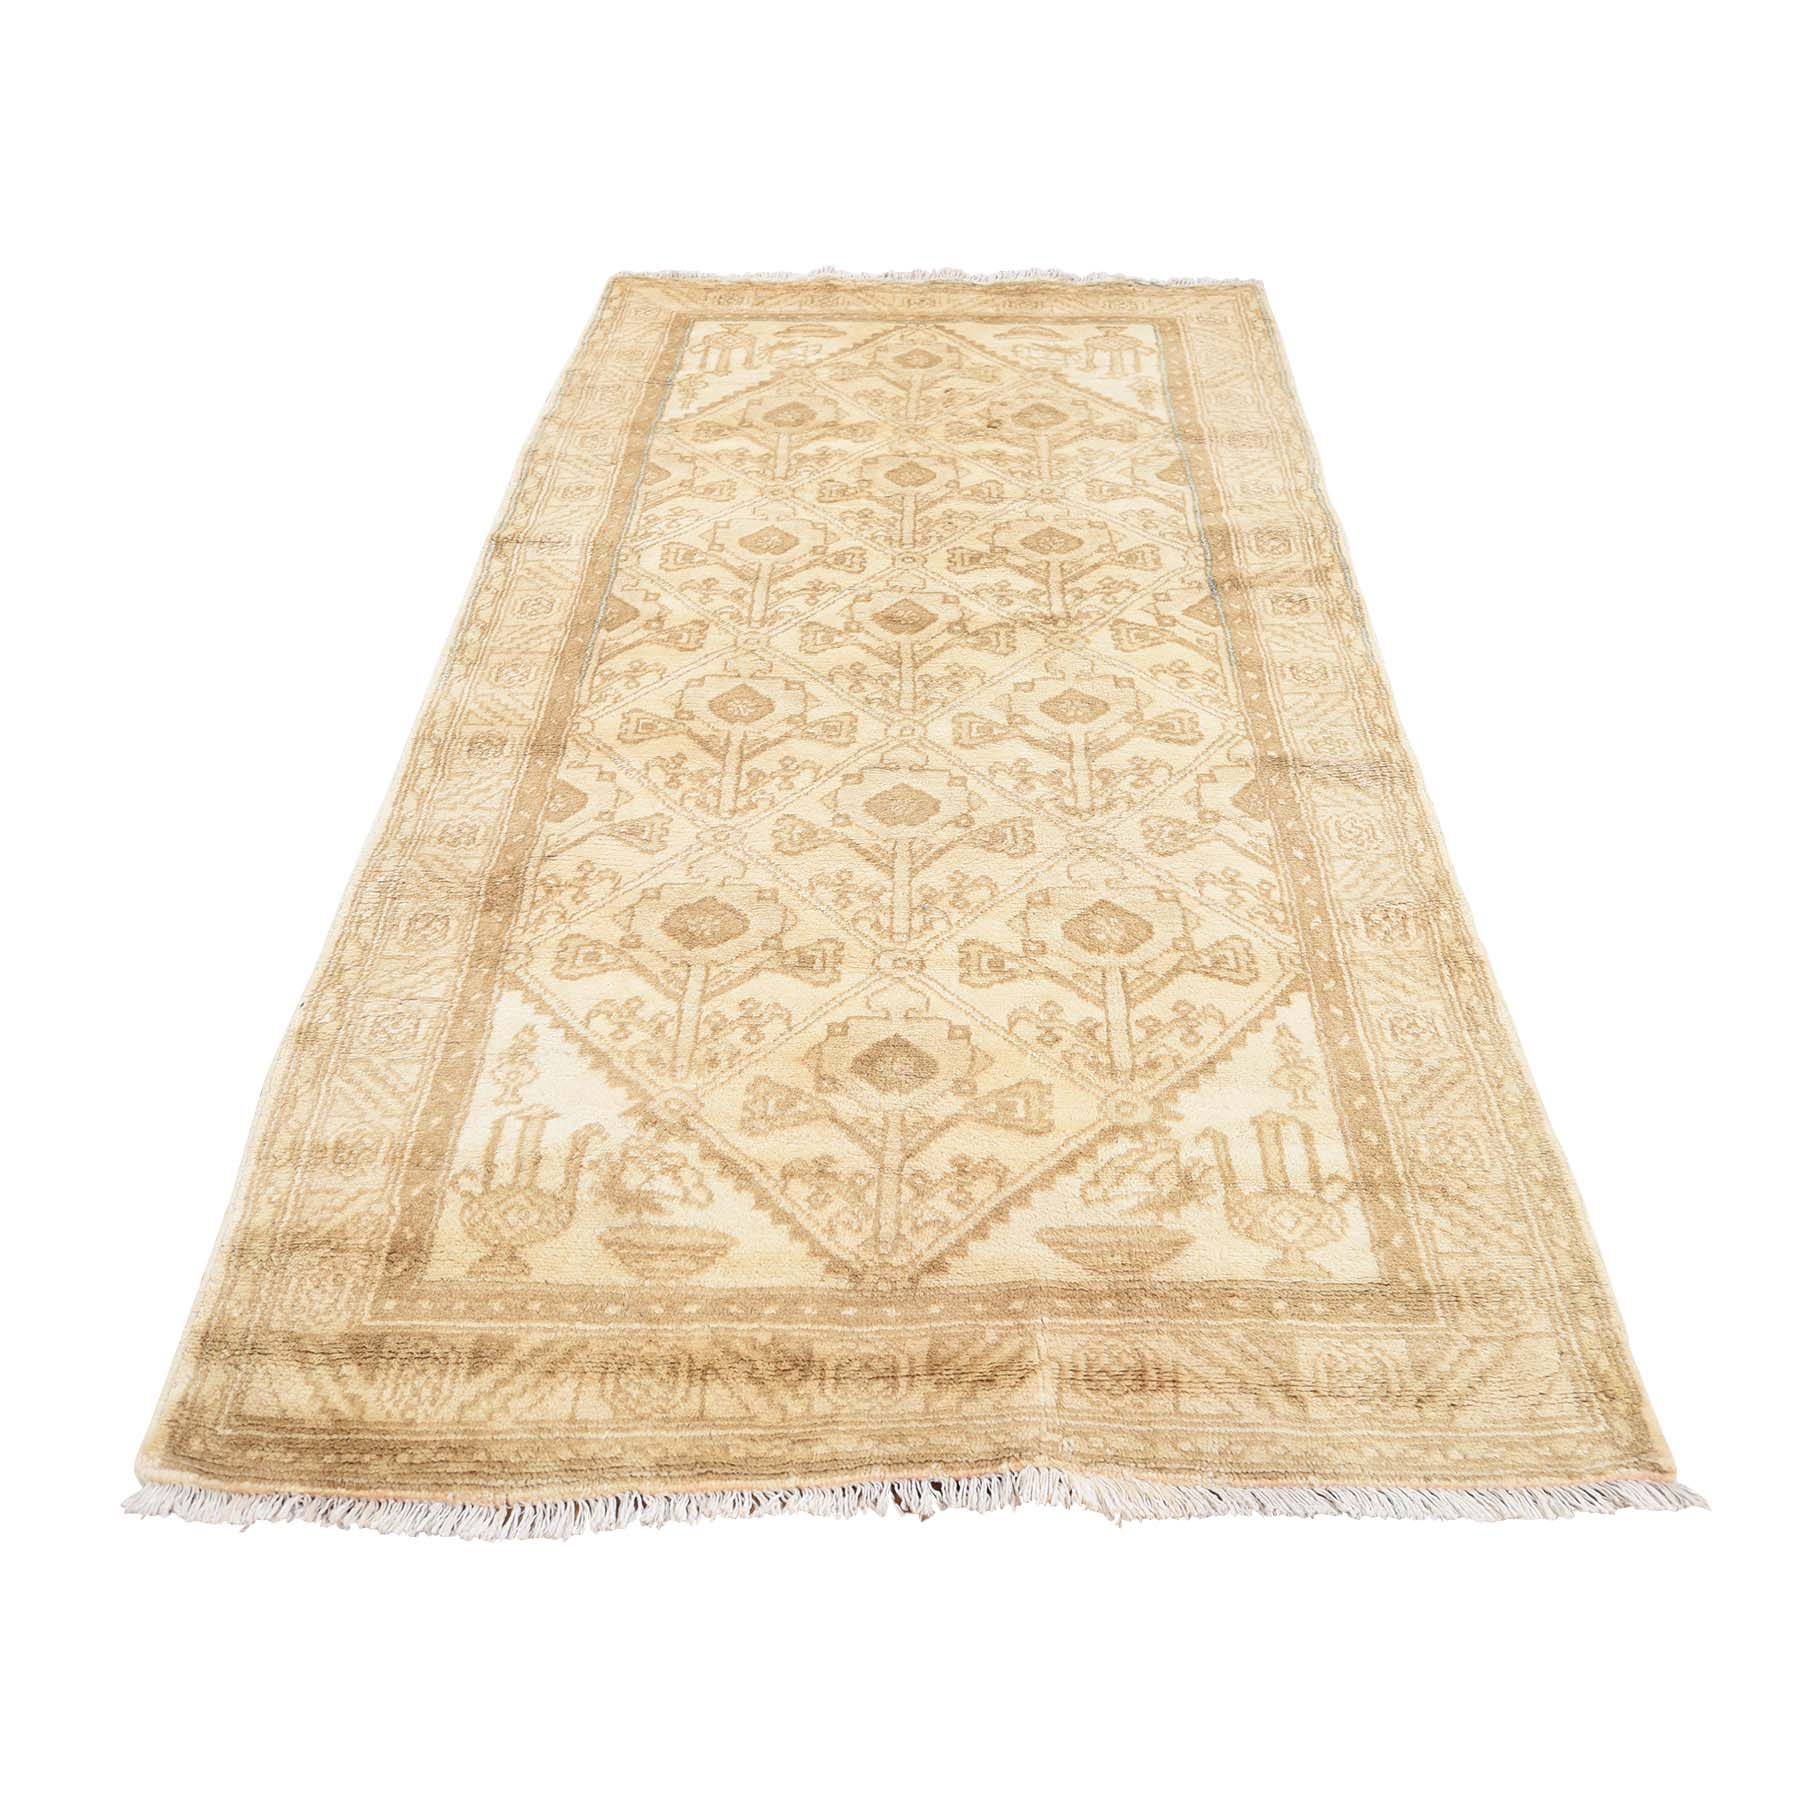 3'1''X5'9'' Hand Knotted Turkish Village With Thick Pile Oriental Runner Rug moac888e